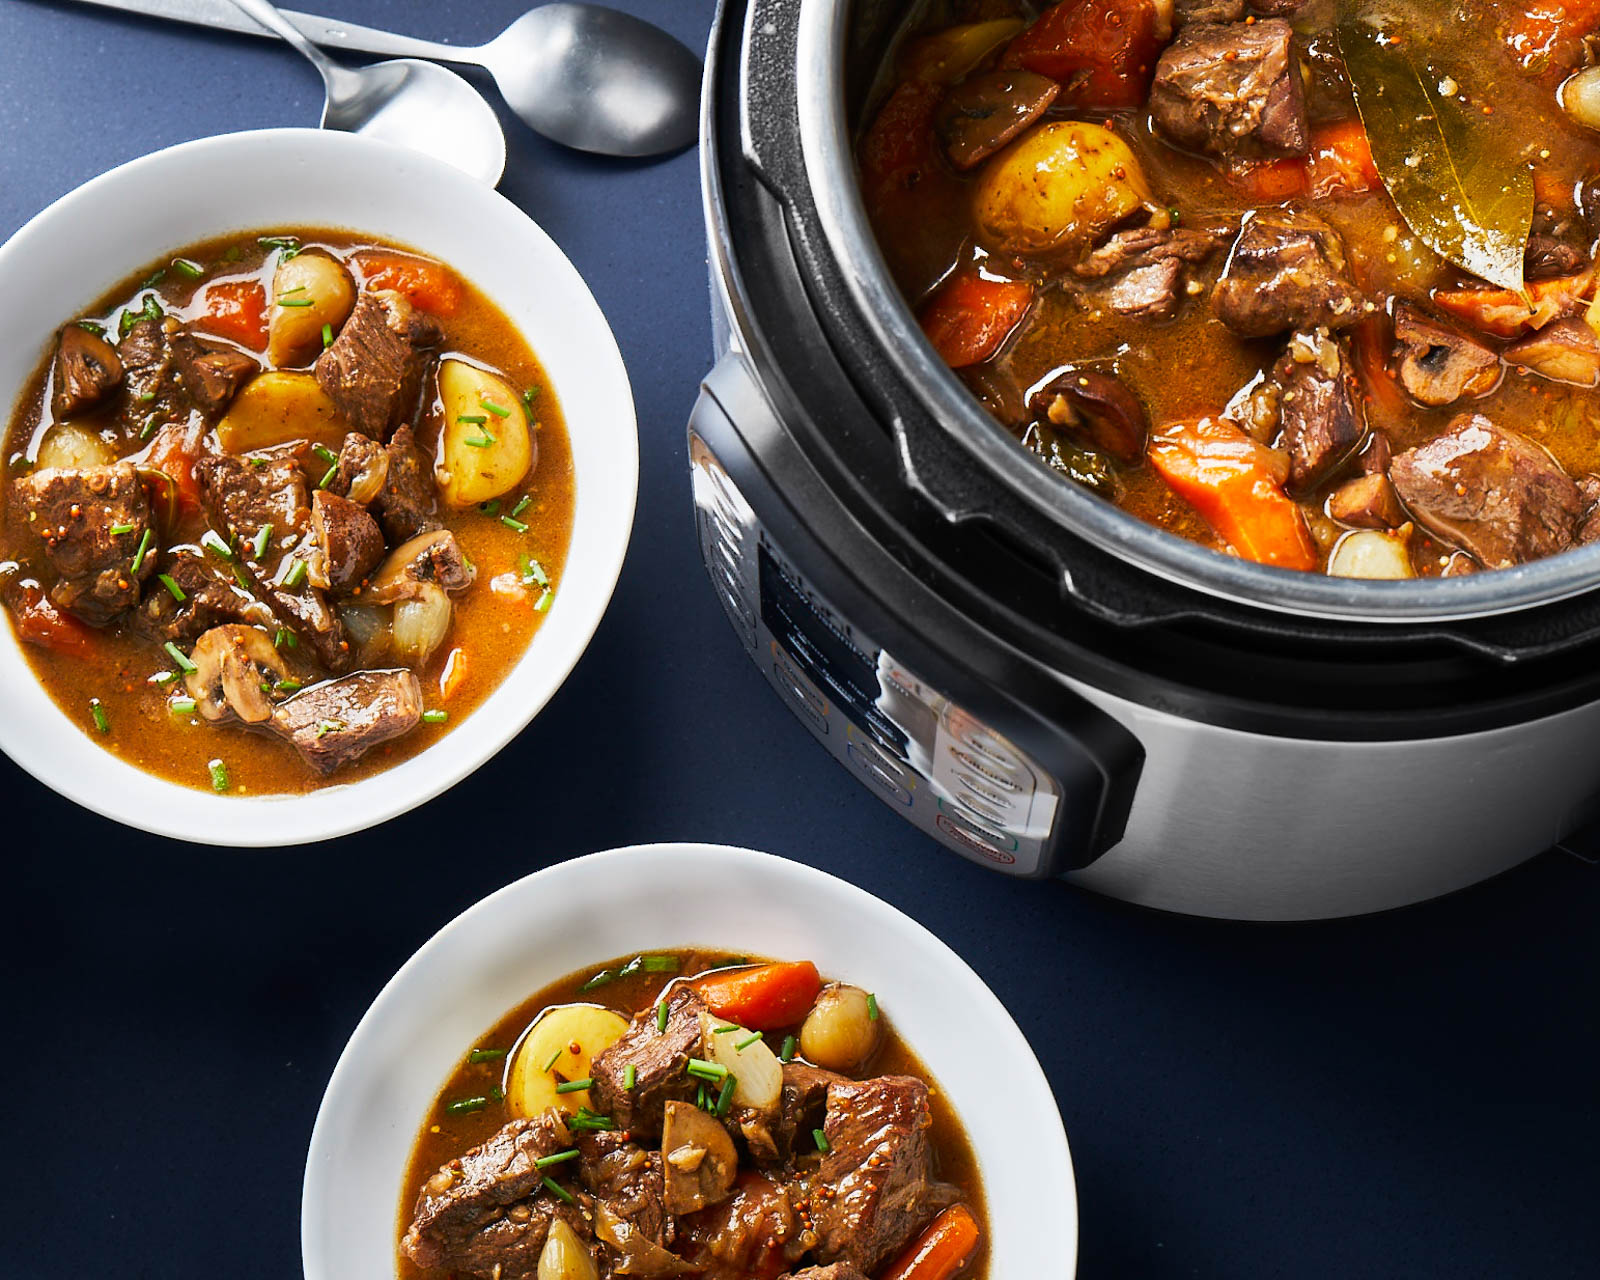 Instant Pot Classic Beef Stew Recipe - Robby Melvin | Food & Wine